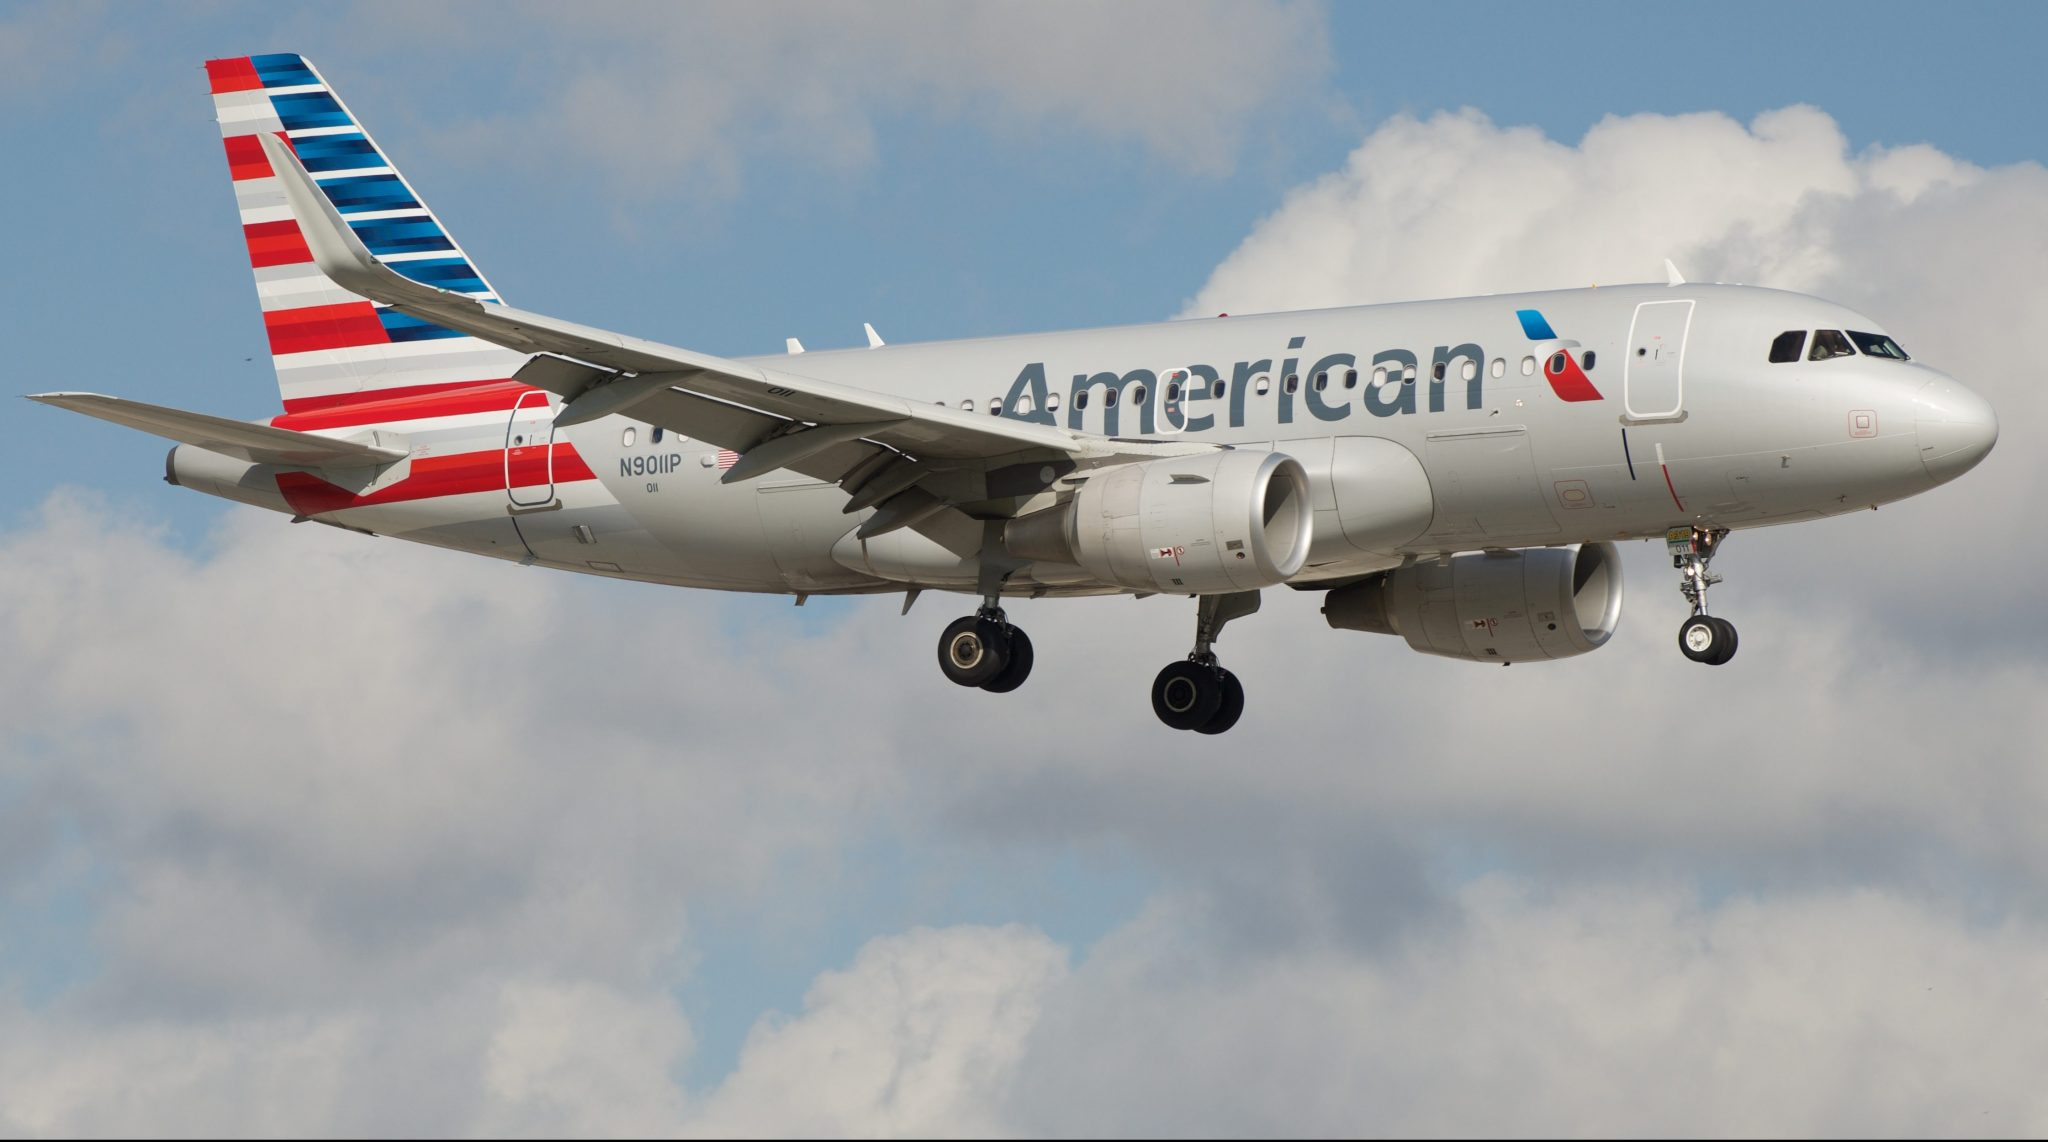 An American Airlines A319 aircraft the type